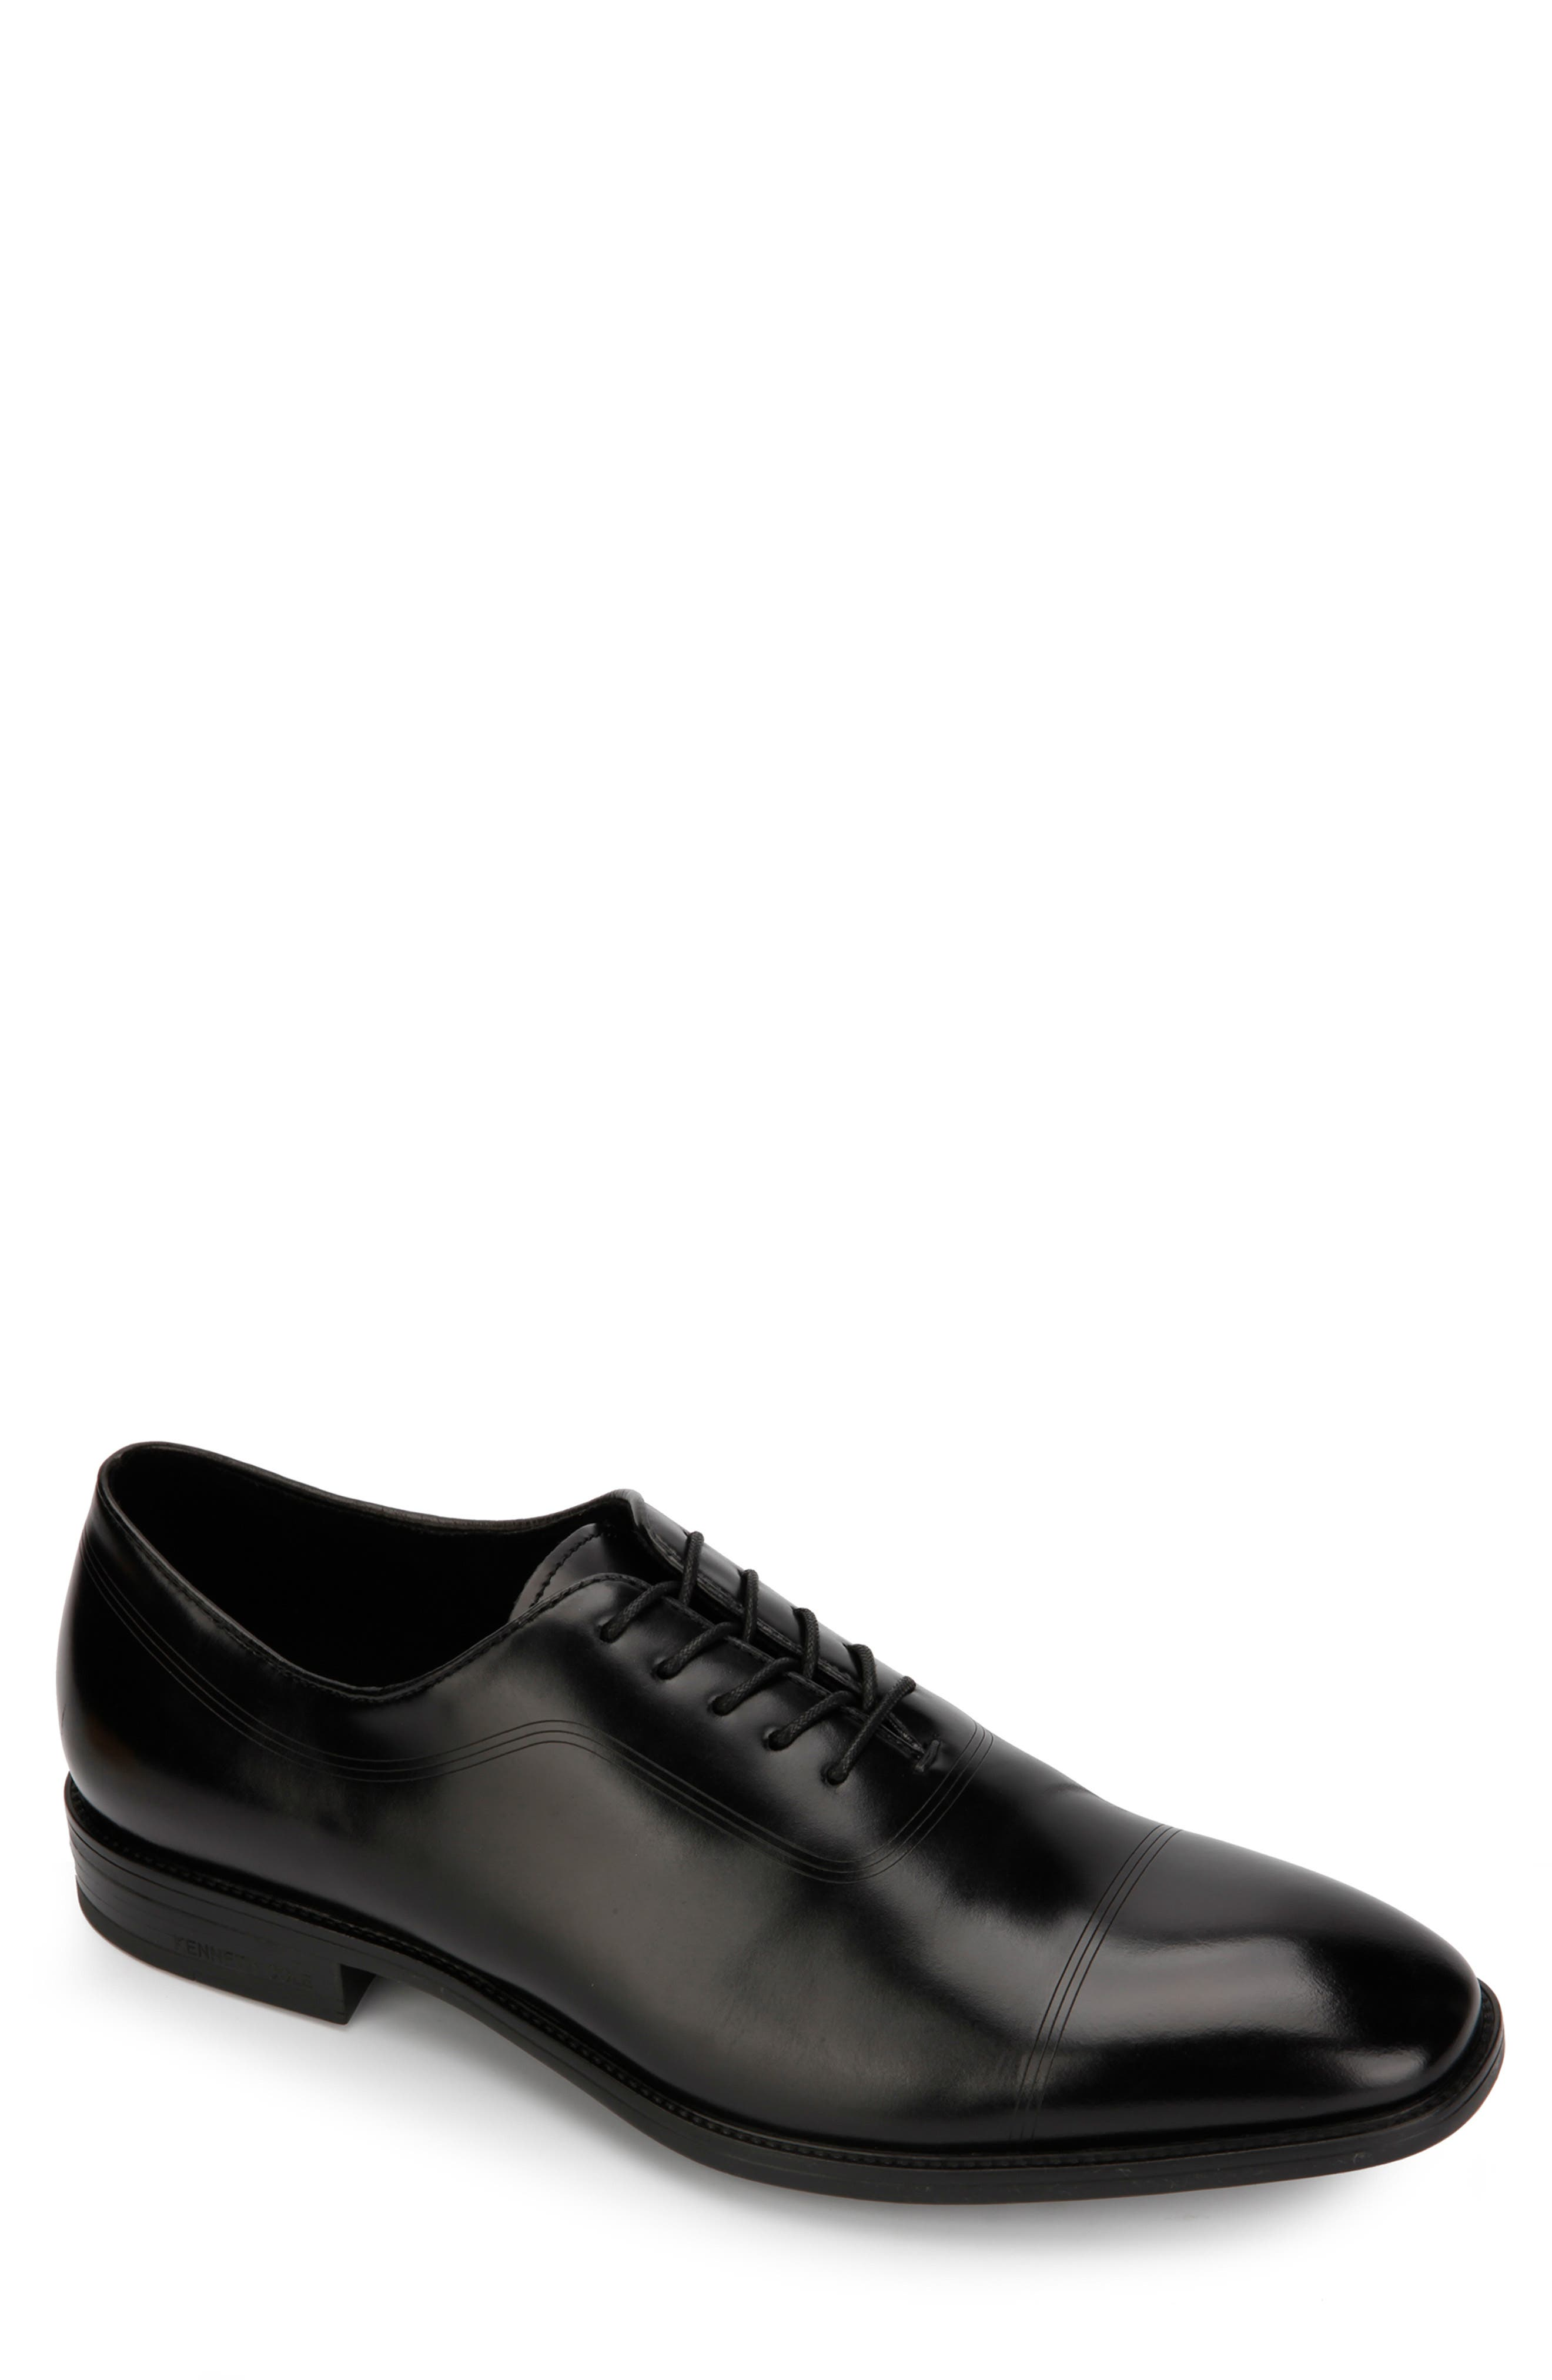 KENNETH COLE NEW YORK, Ticketpod Cap Toe Oxford, Main thumbnail 1, color, BLACK LEATHER